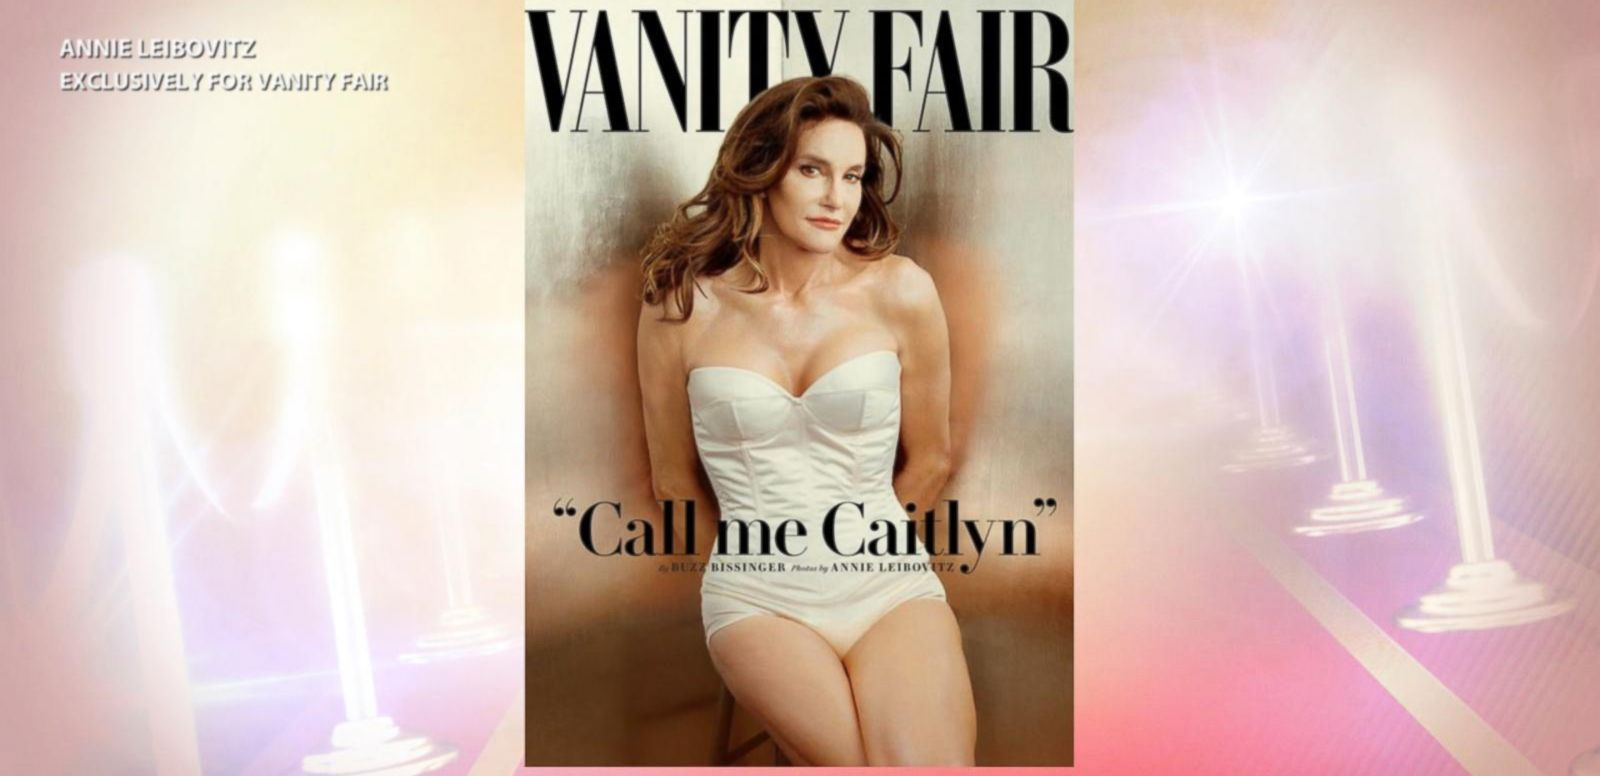 VIDEO: Caitlyn Jenner Reveals Herself in Vanity Fair Photo Shoot